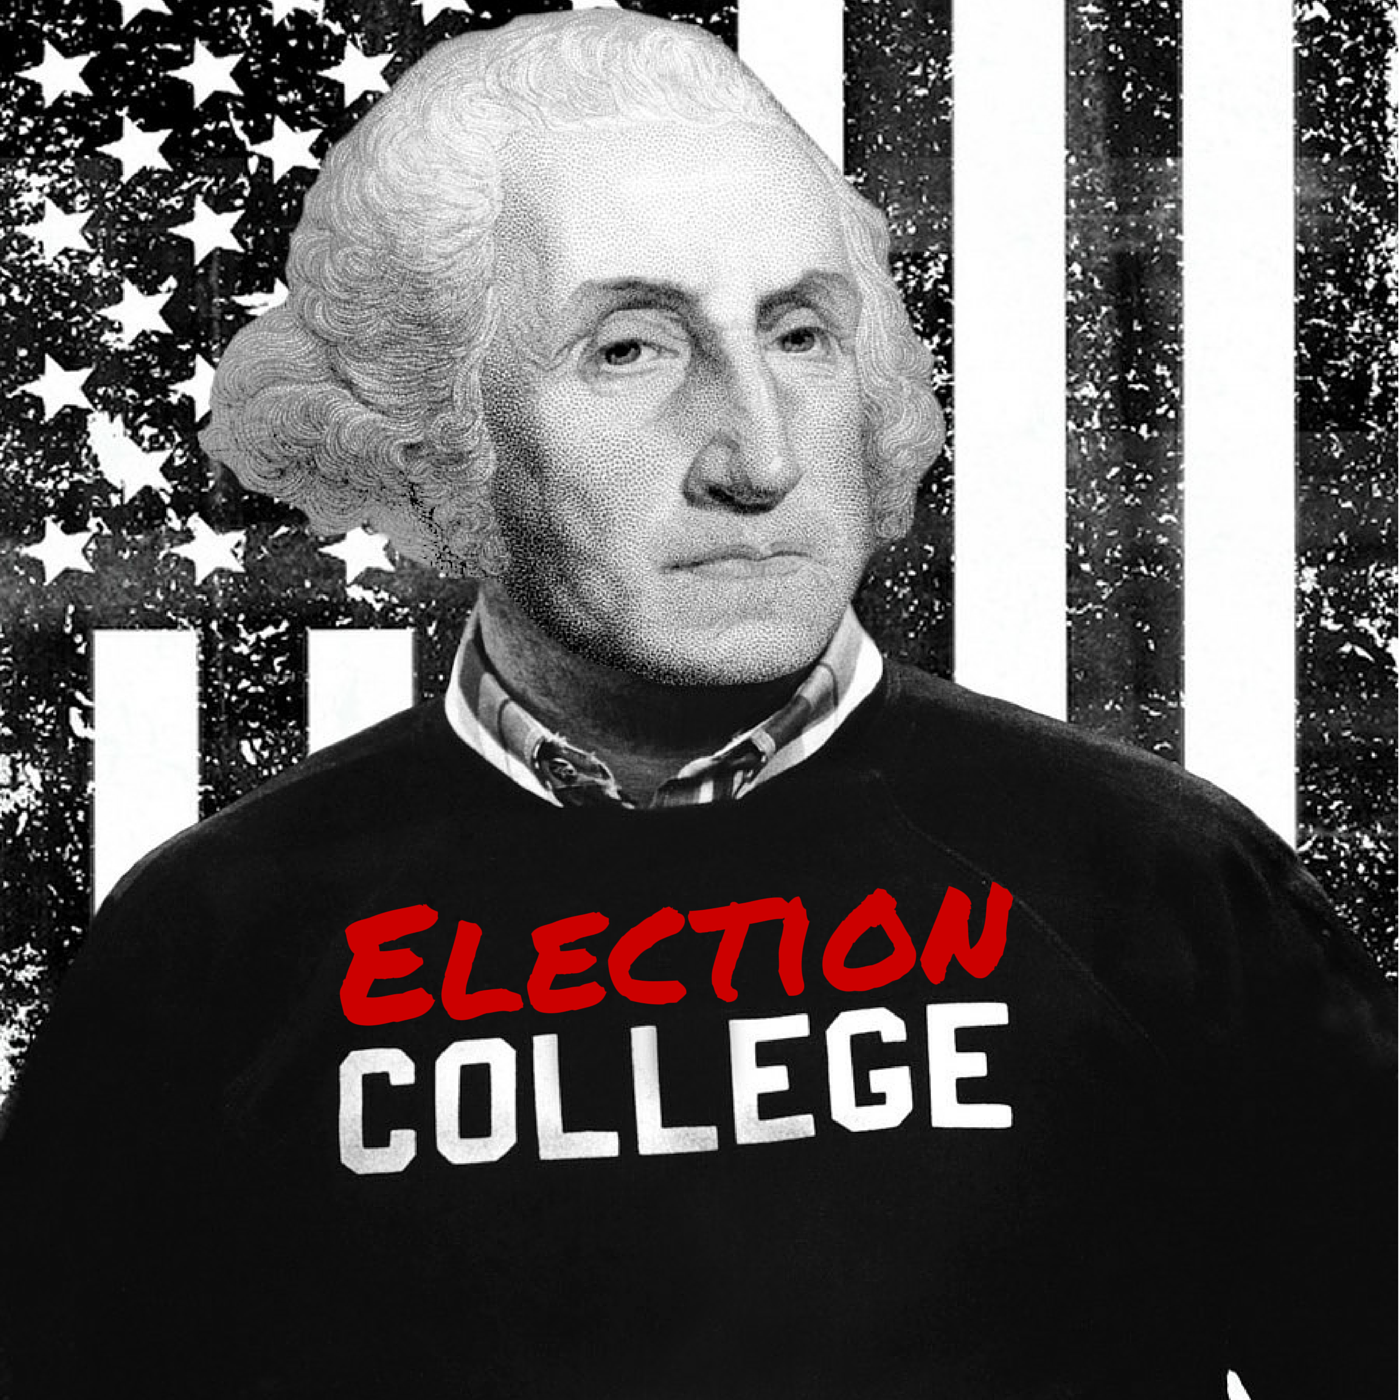 Obama Gets Reelected - Election of 2012 | Episode #077 | Election College: United States Presidential Election History